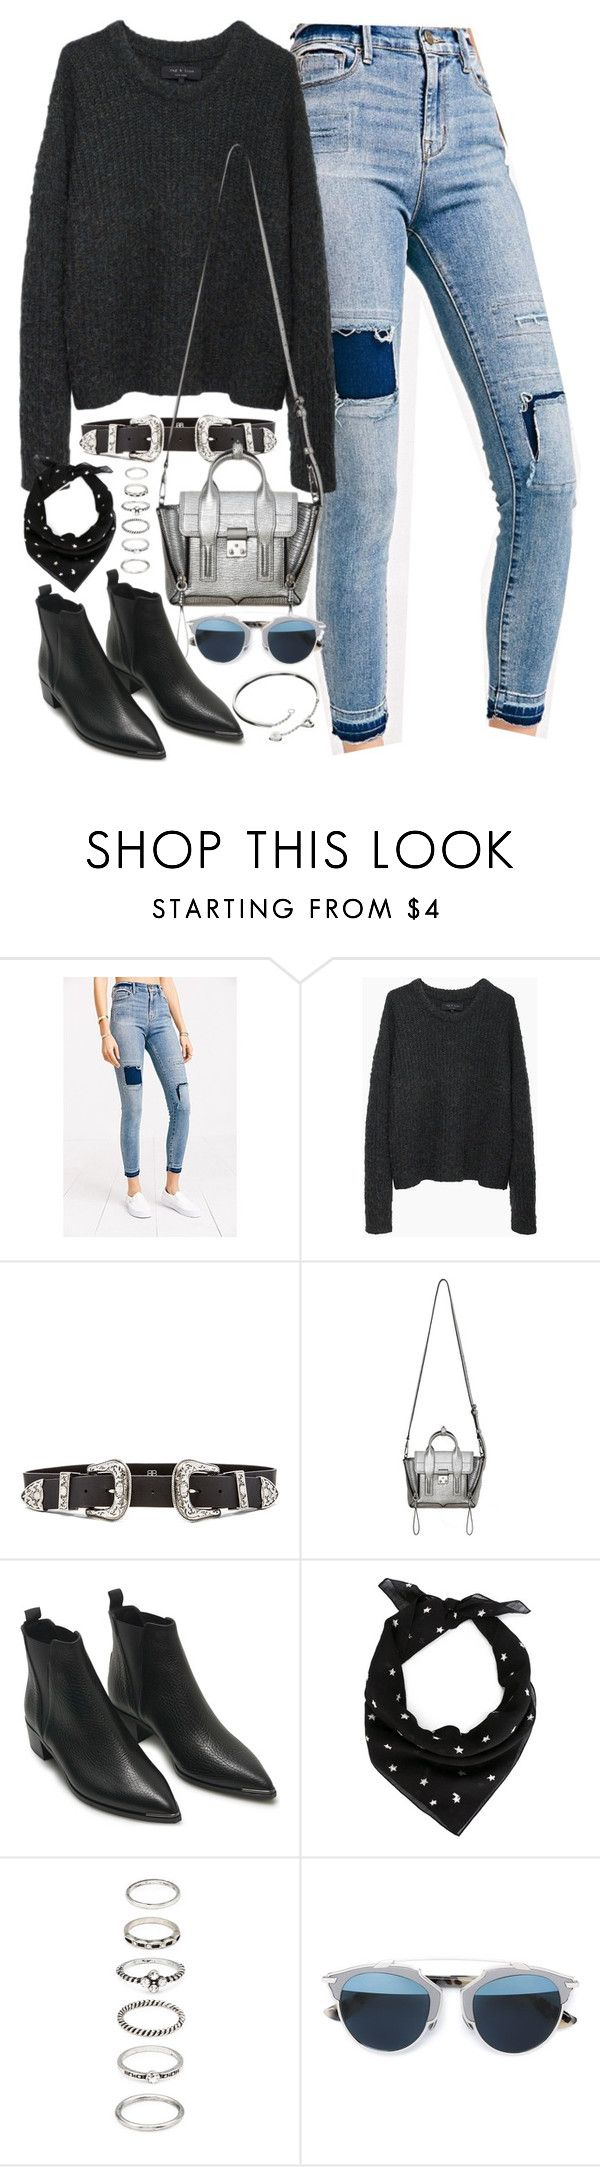 """Outfit with patchwork jeans and boots"" by ferned ❤ liked on Polyvore featuring BDG, rag & bone, B-Low the Belt, 3.1 Phillip Lim, Acne Studios, Yves Saint Laurent, Forever 21, Christian Dior and Cartier"